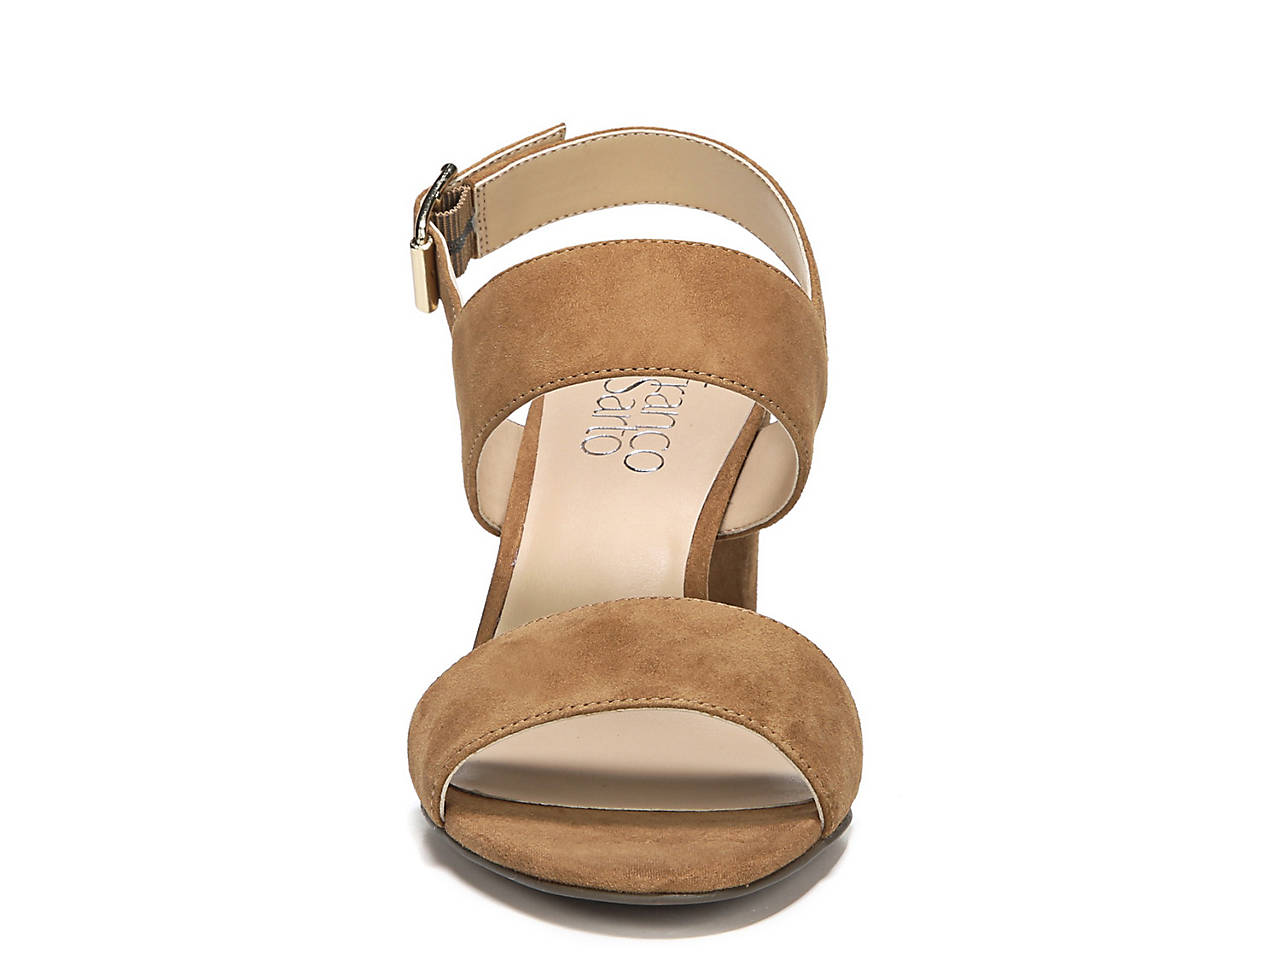 Franco Sarto Rumi Sandal Womens Shoes Dsw Tendencies Sandals Footbed 2 Strap Brown 42 Previous